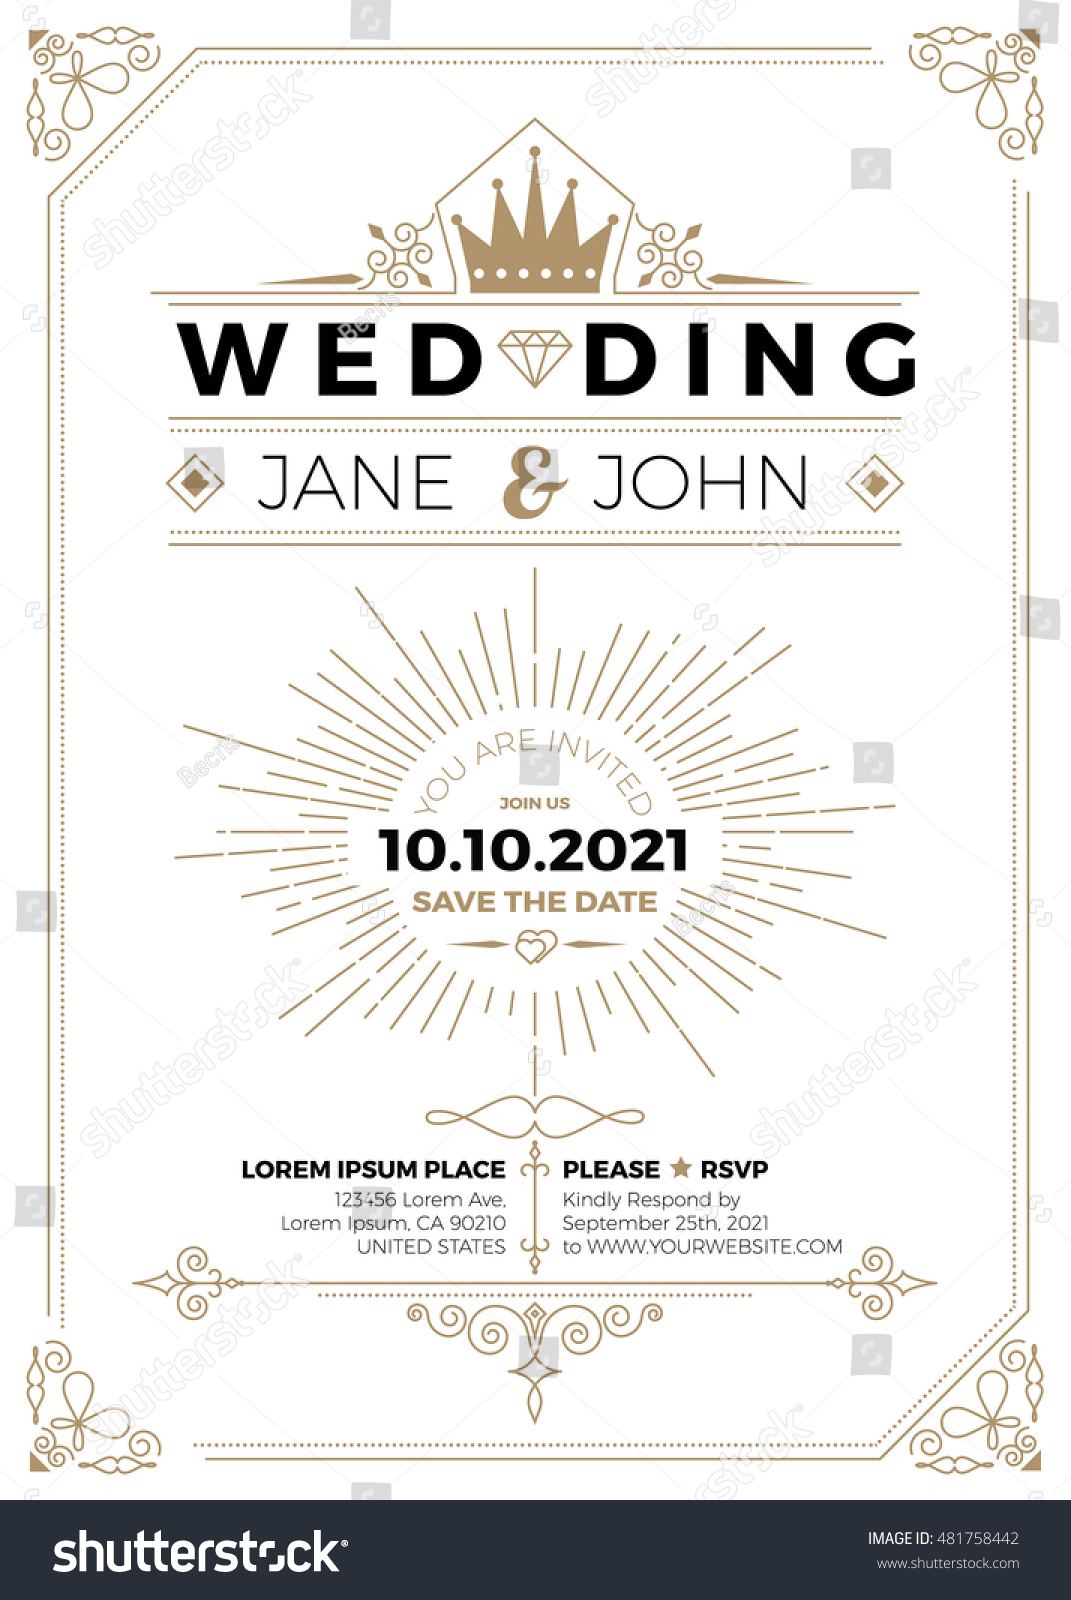 Vintage Wedding Invitation Card A 5 Size Stock Vector (Royalty Free ...